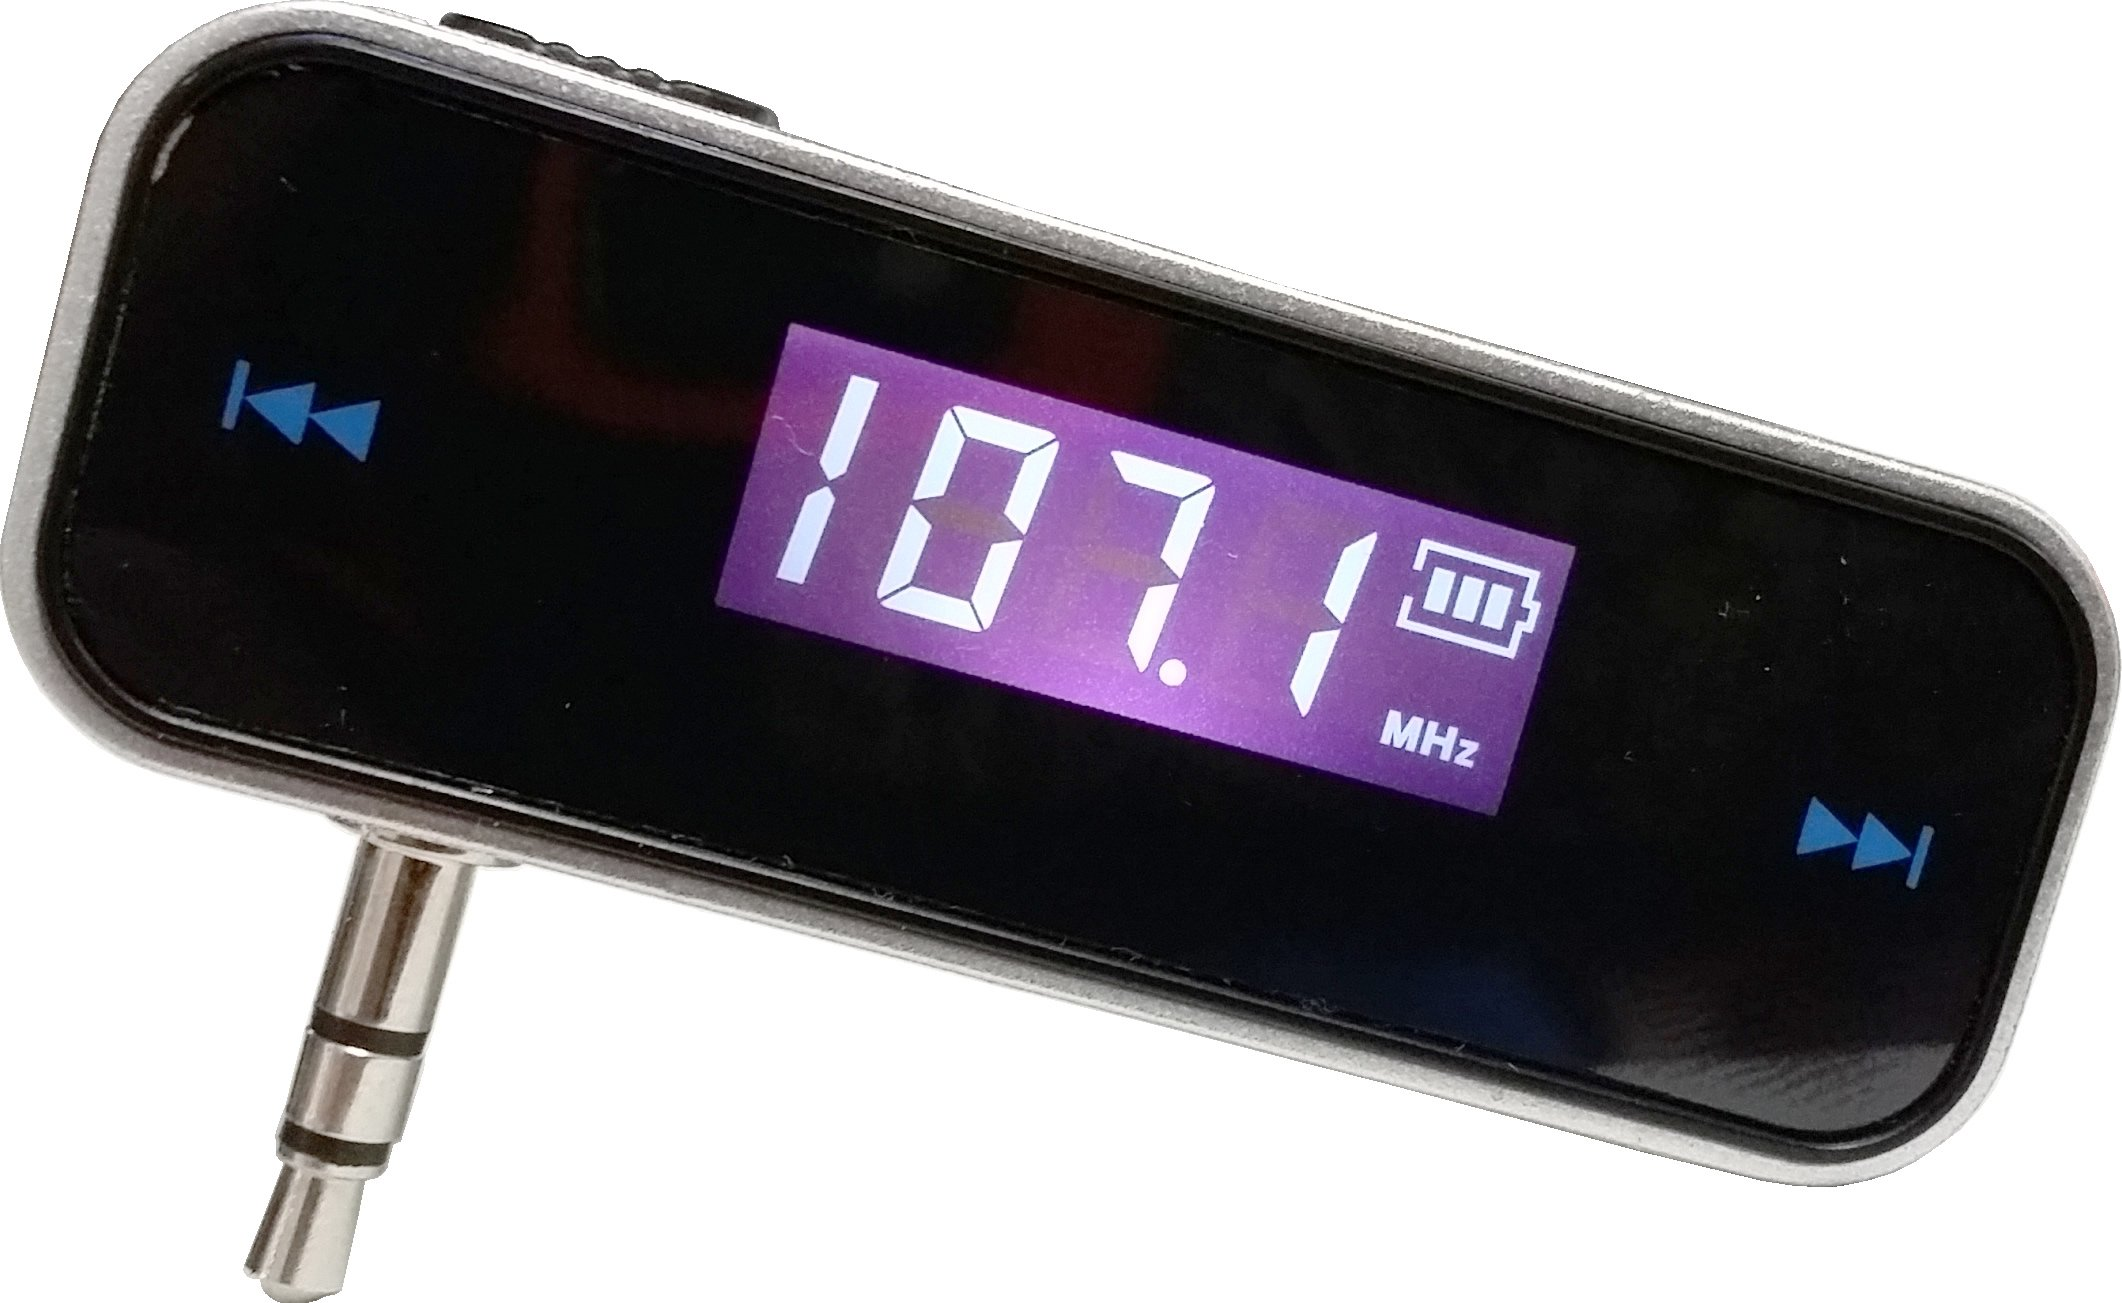 FM Transmitter (Rechargeable) - Fits all IPhones, Androids, MP3 Players, and devices with headphone jacks